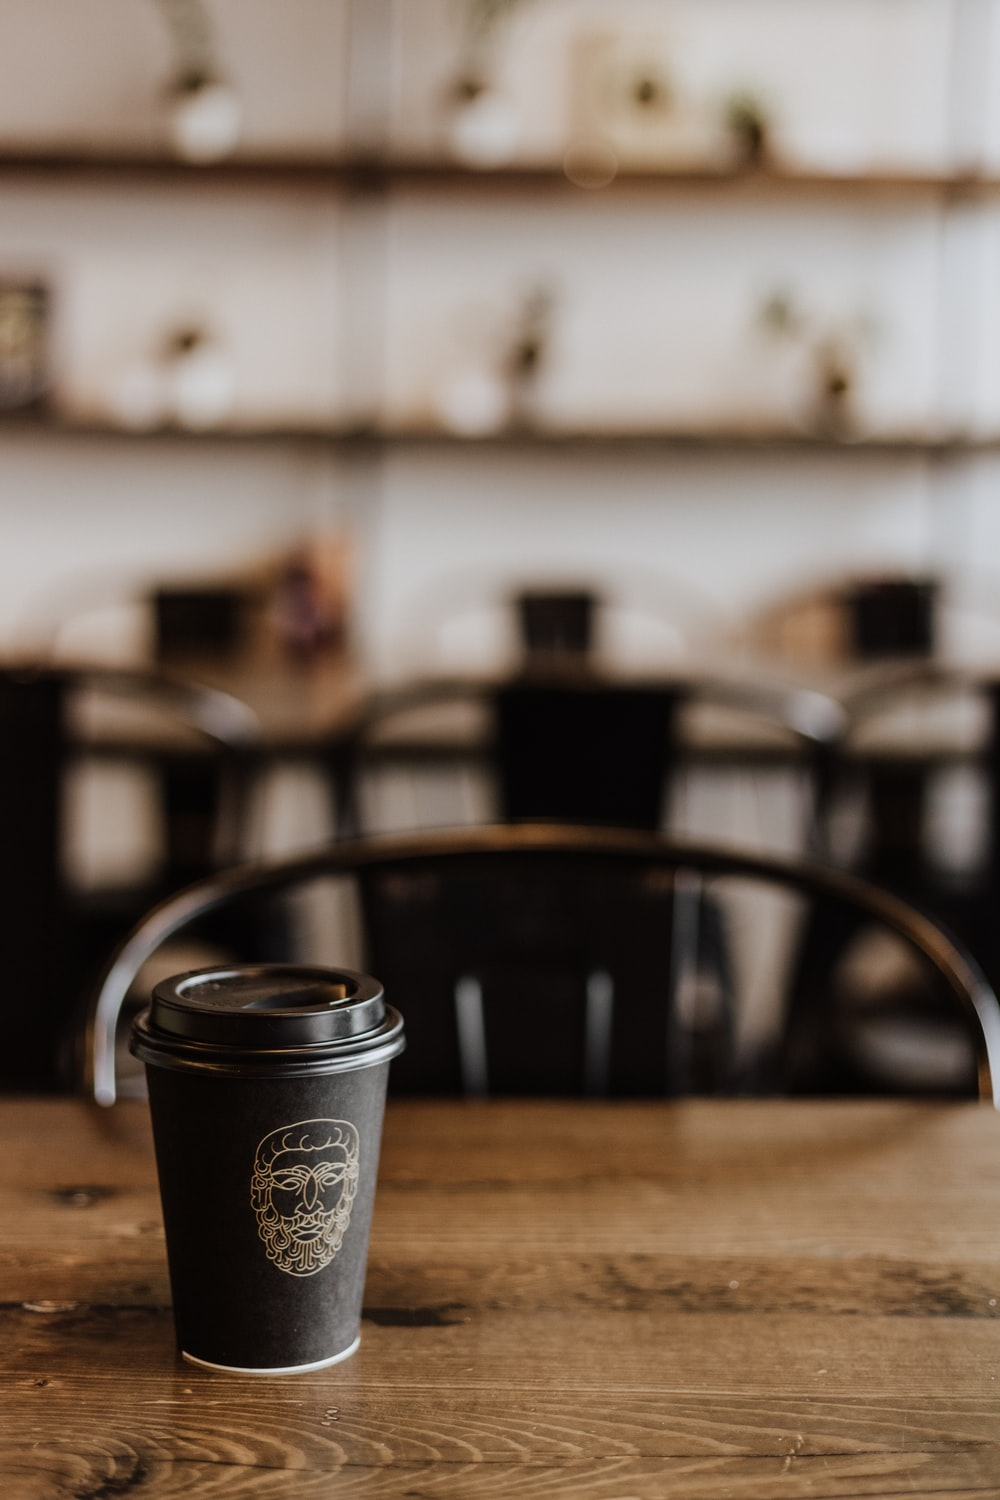 black disposable coffee cup on wooden table